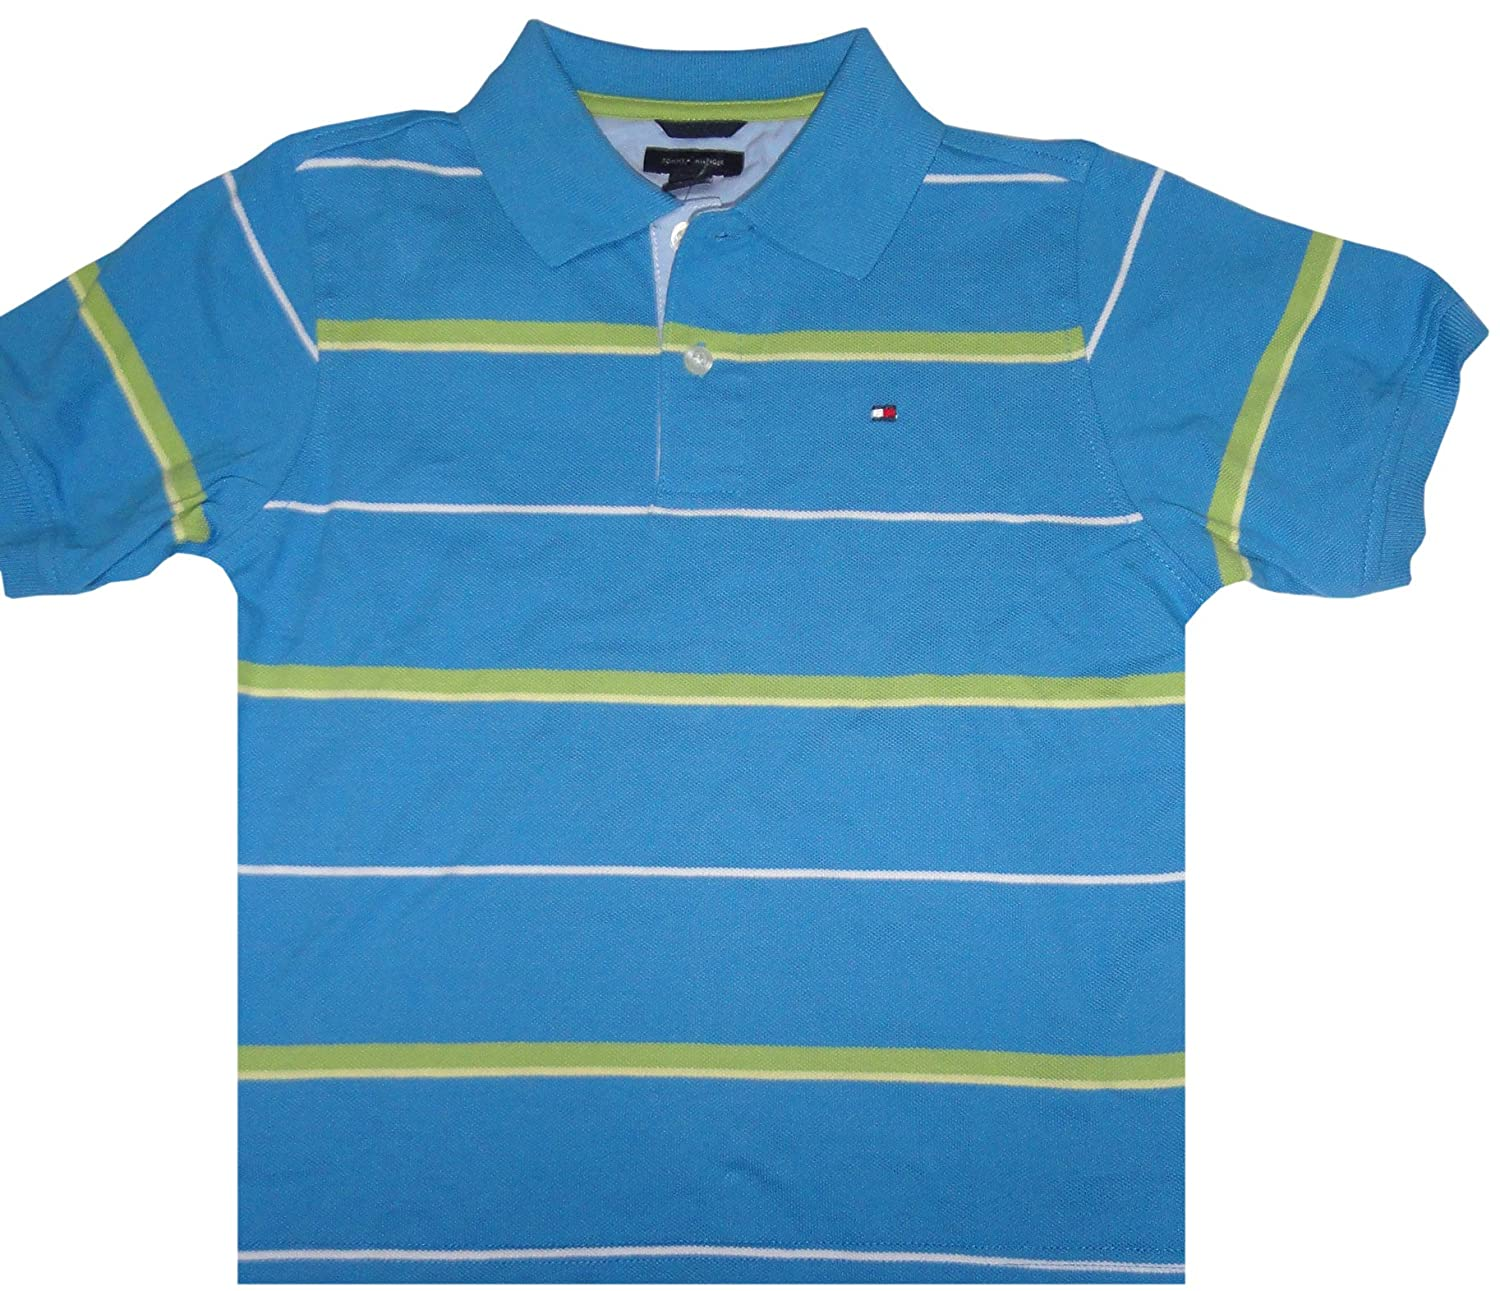 a5fb3e7a Amazon.com: Tommy Hilfiger Boys Short Sleeve Polo Shirt Rio Grande Blue, 7:  Clothing